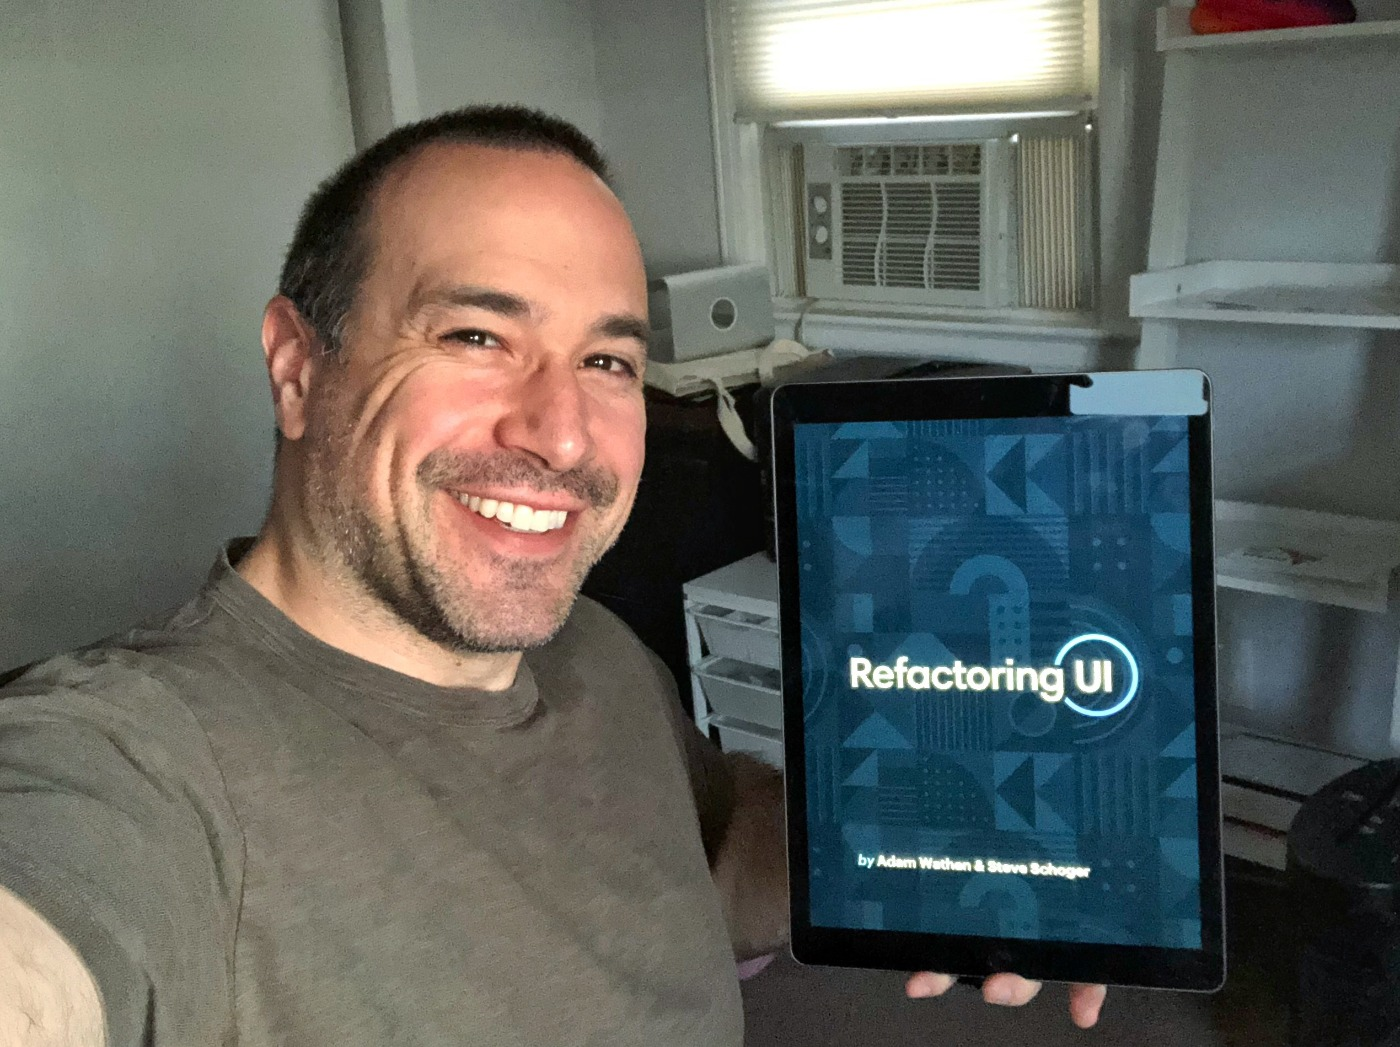 Refactoring UI by Adam Wathan and Steve Schoger review by Ben Nadel.